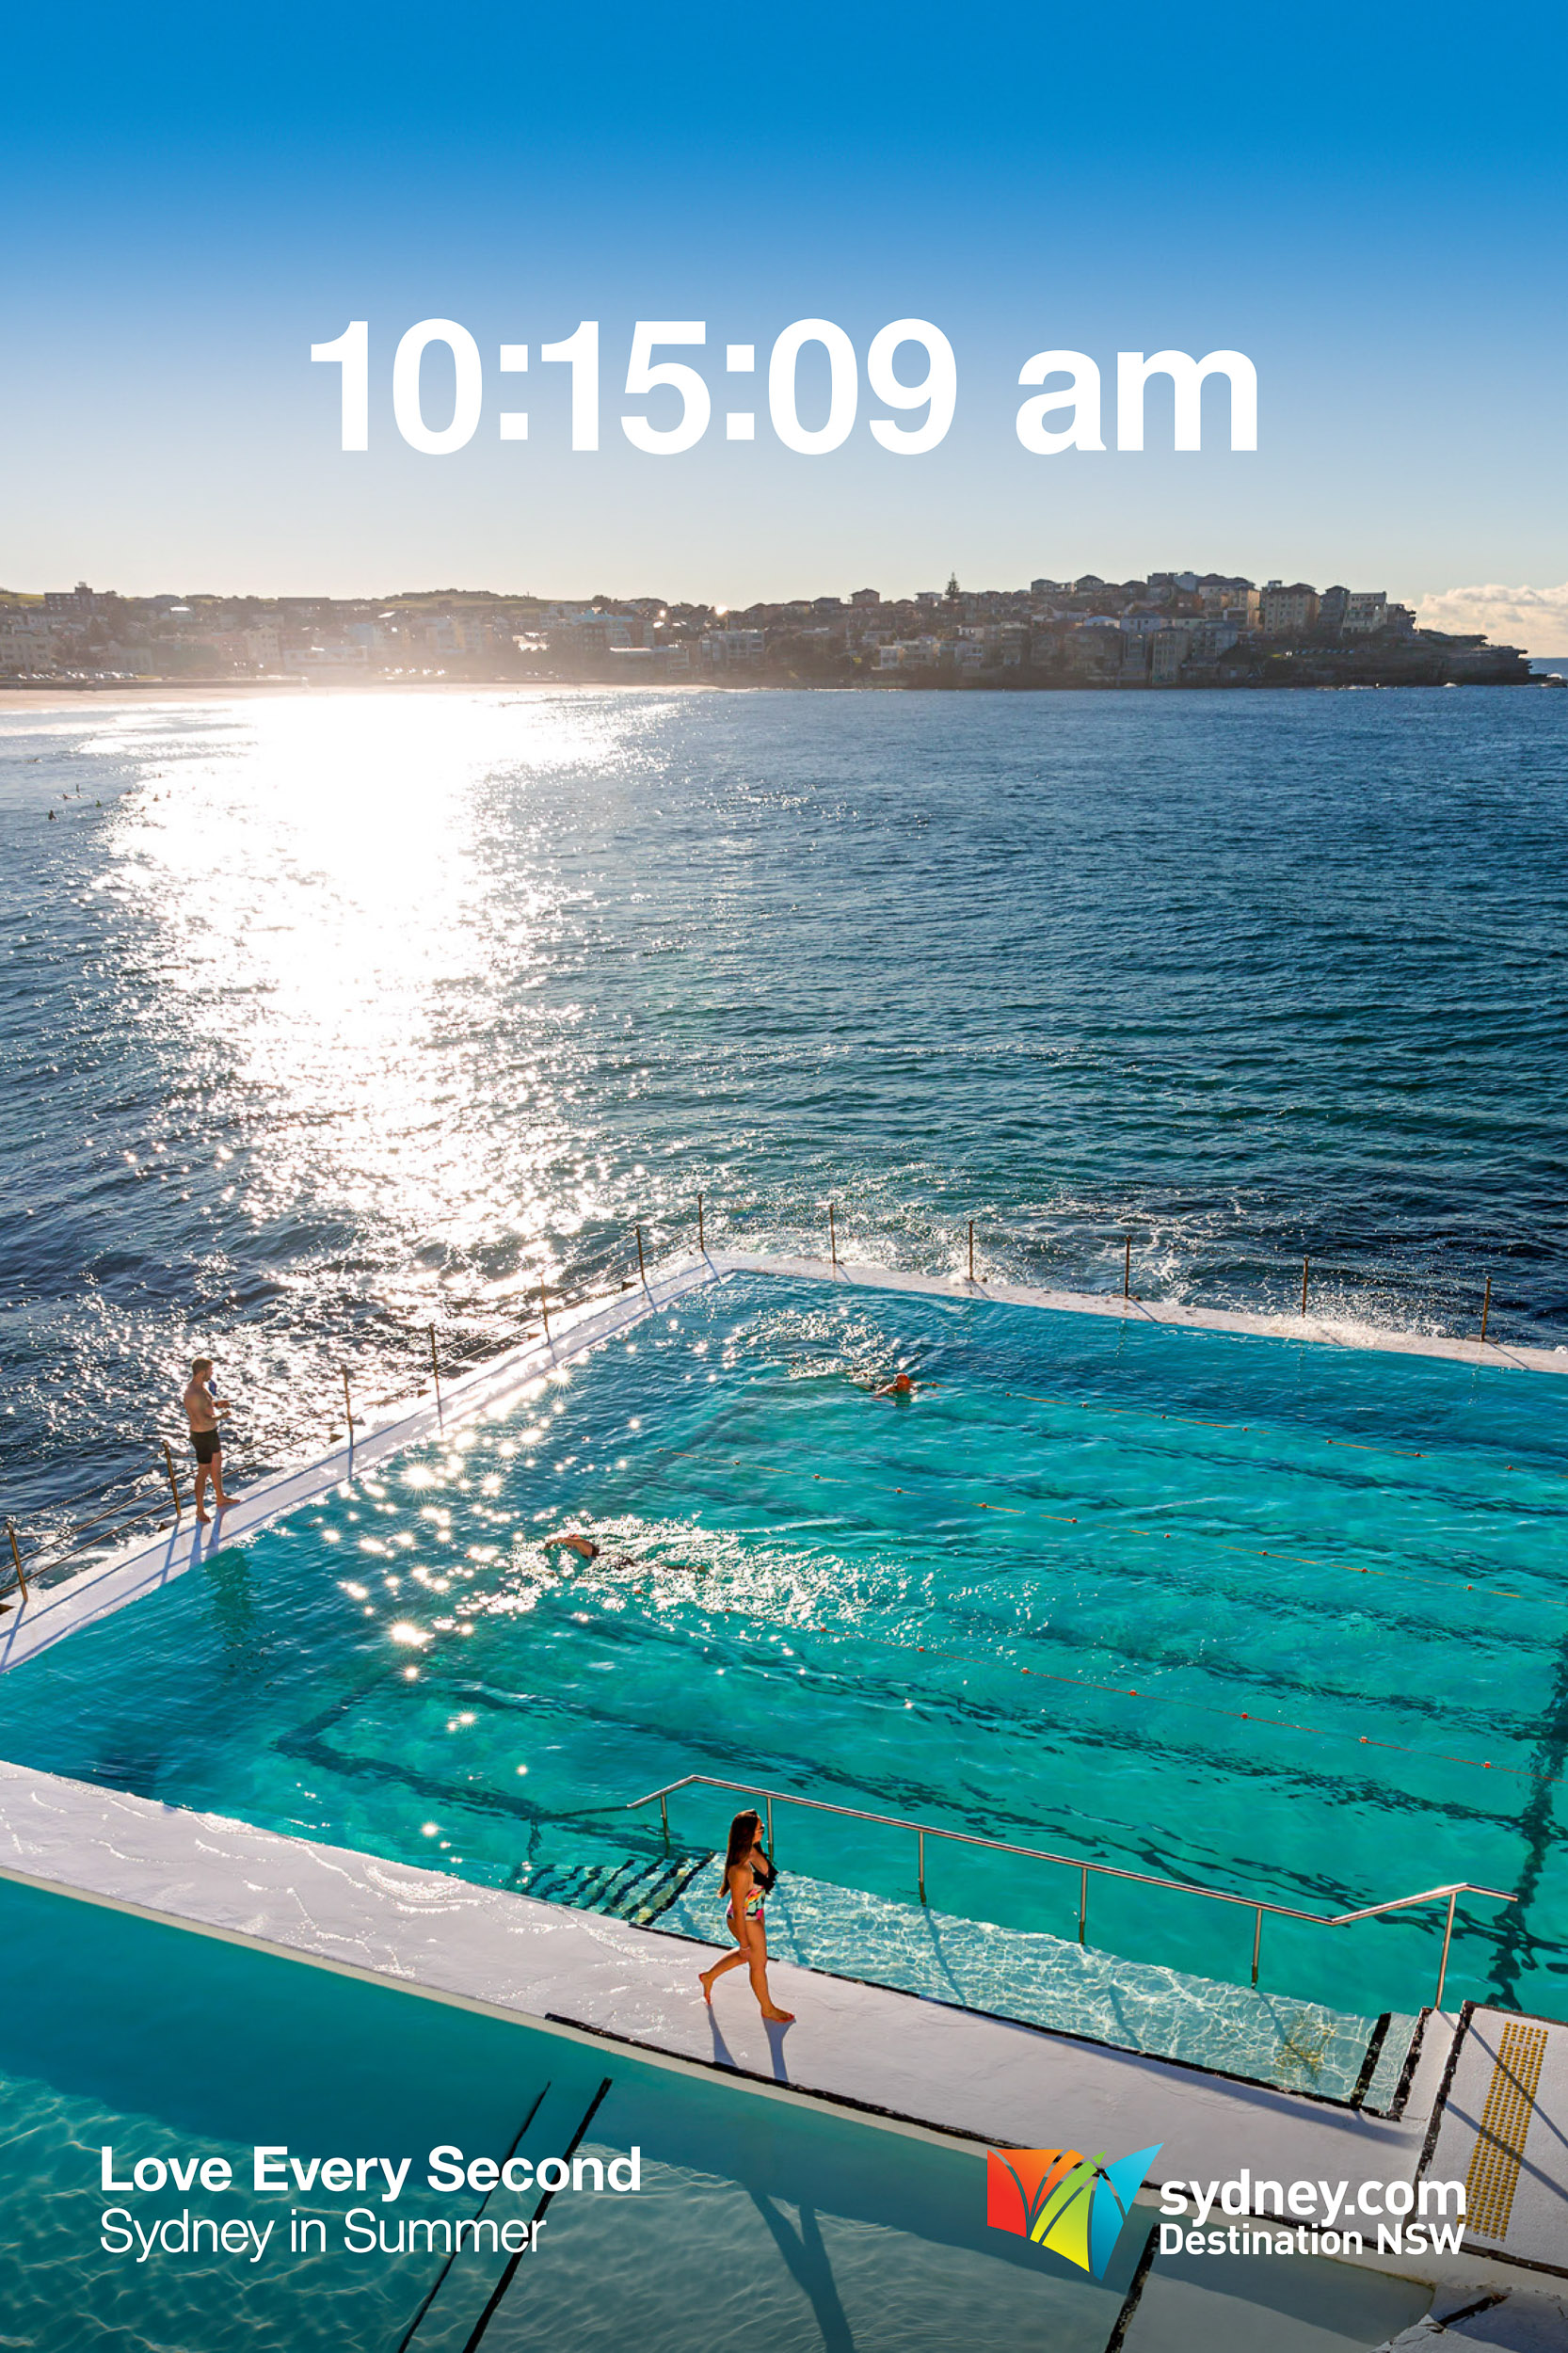 Destination NSW - Love Every Second ad campaign